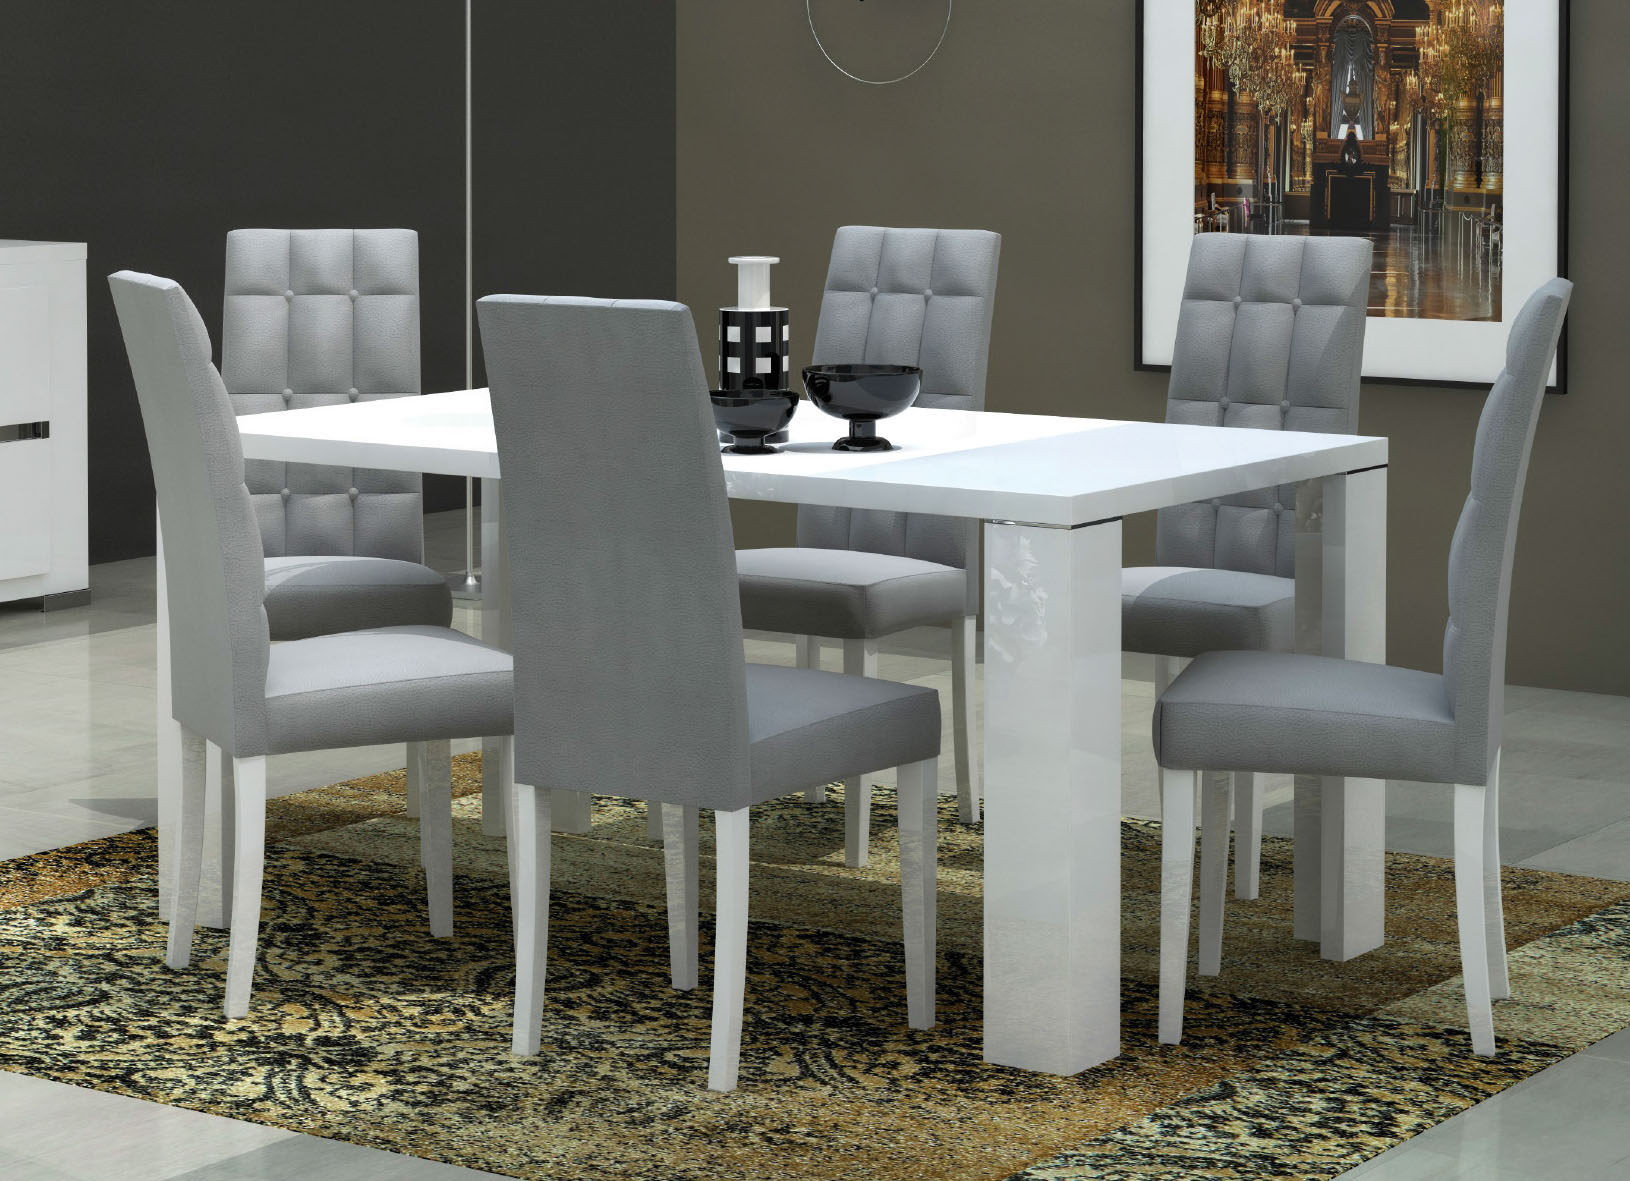 contemporary dining room chair | Elegance Dining Room, Modern Formal Dining Sets, Dining ...